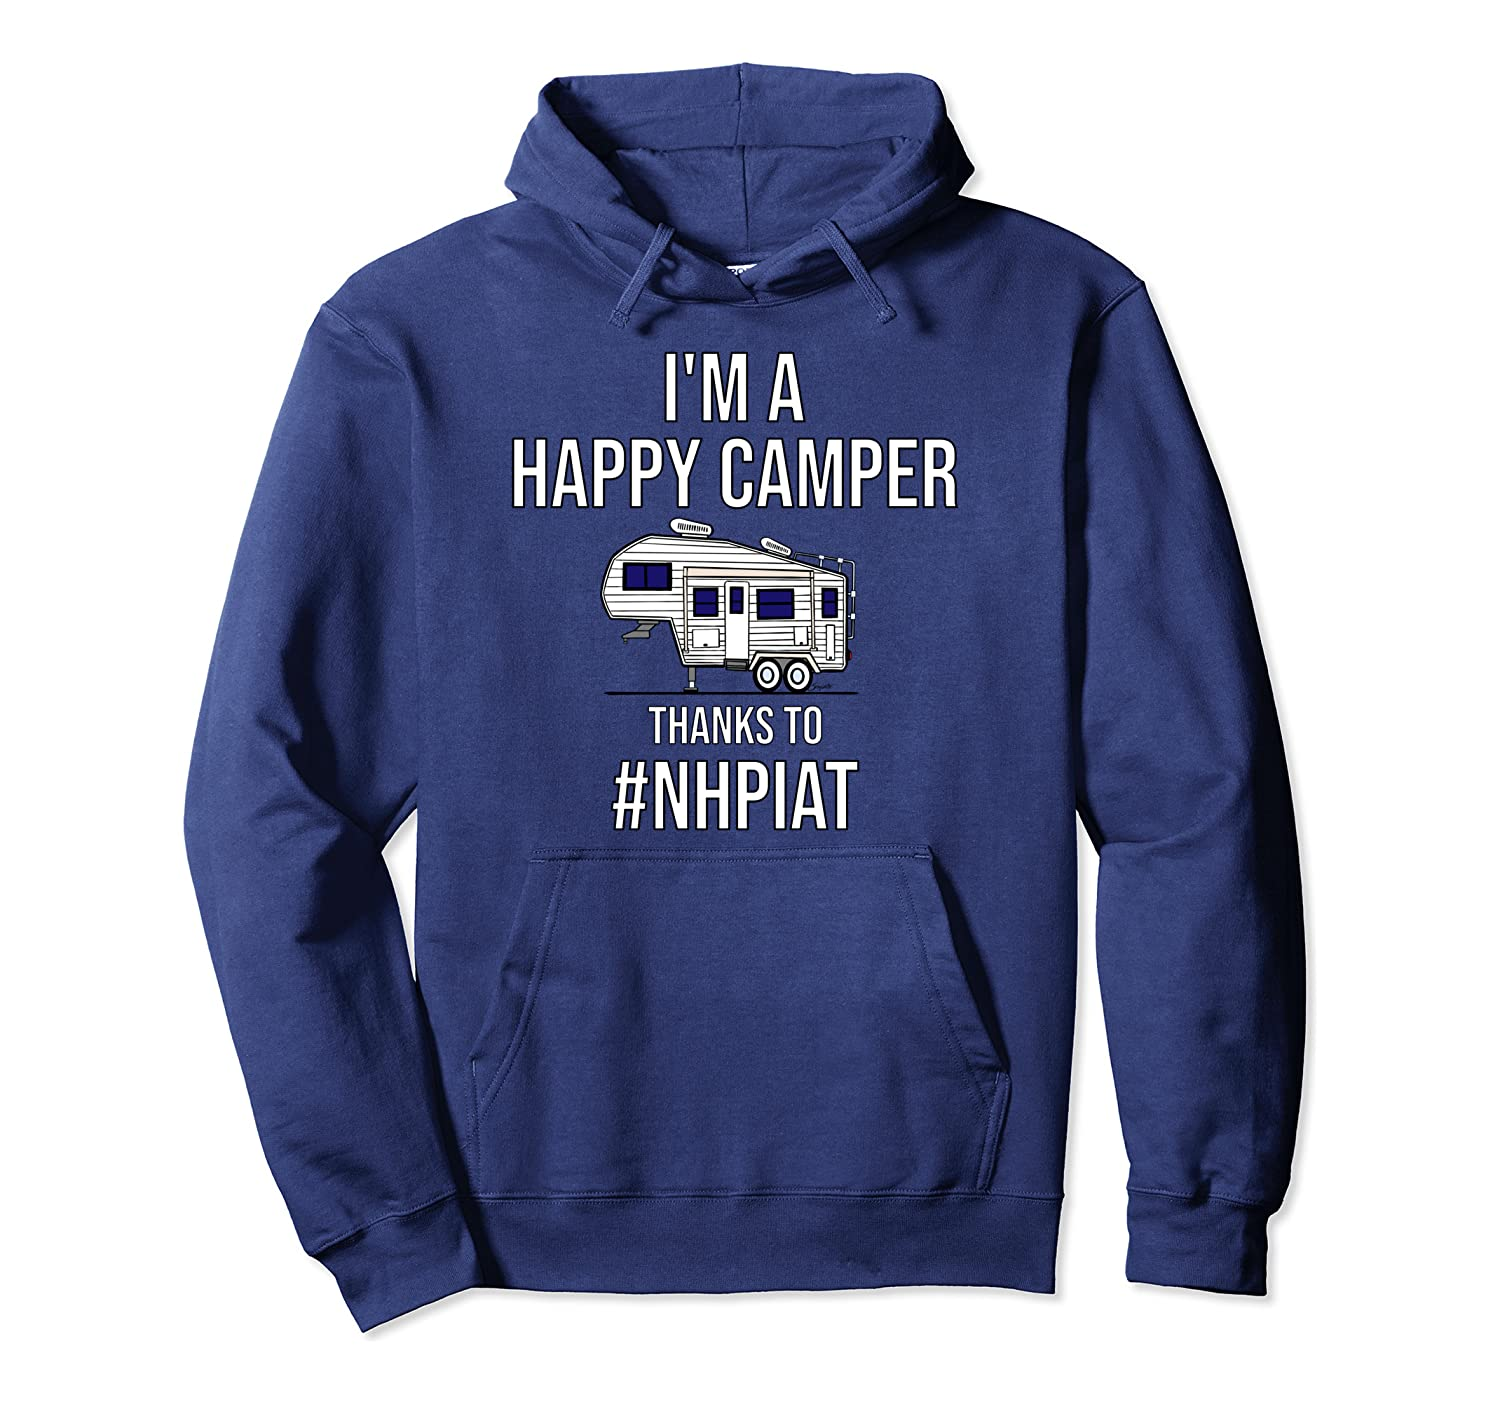 NHPIAT I'M A HAPPY CAMPER THANKS TO #NHPIAT 5r Hoodie